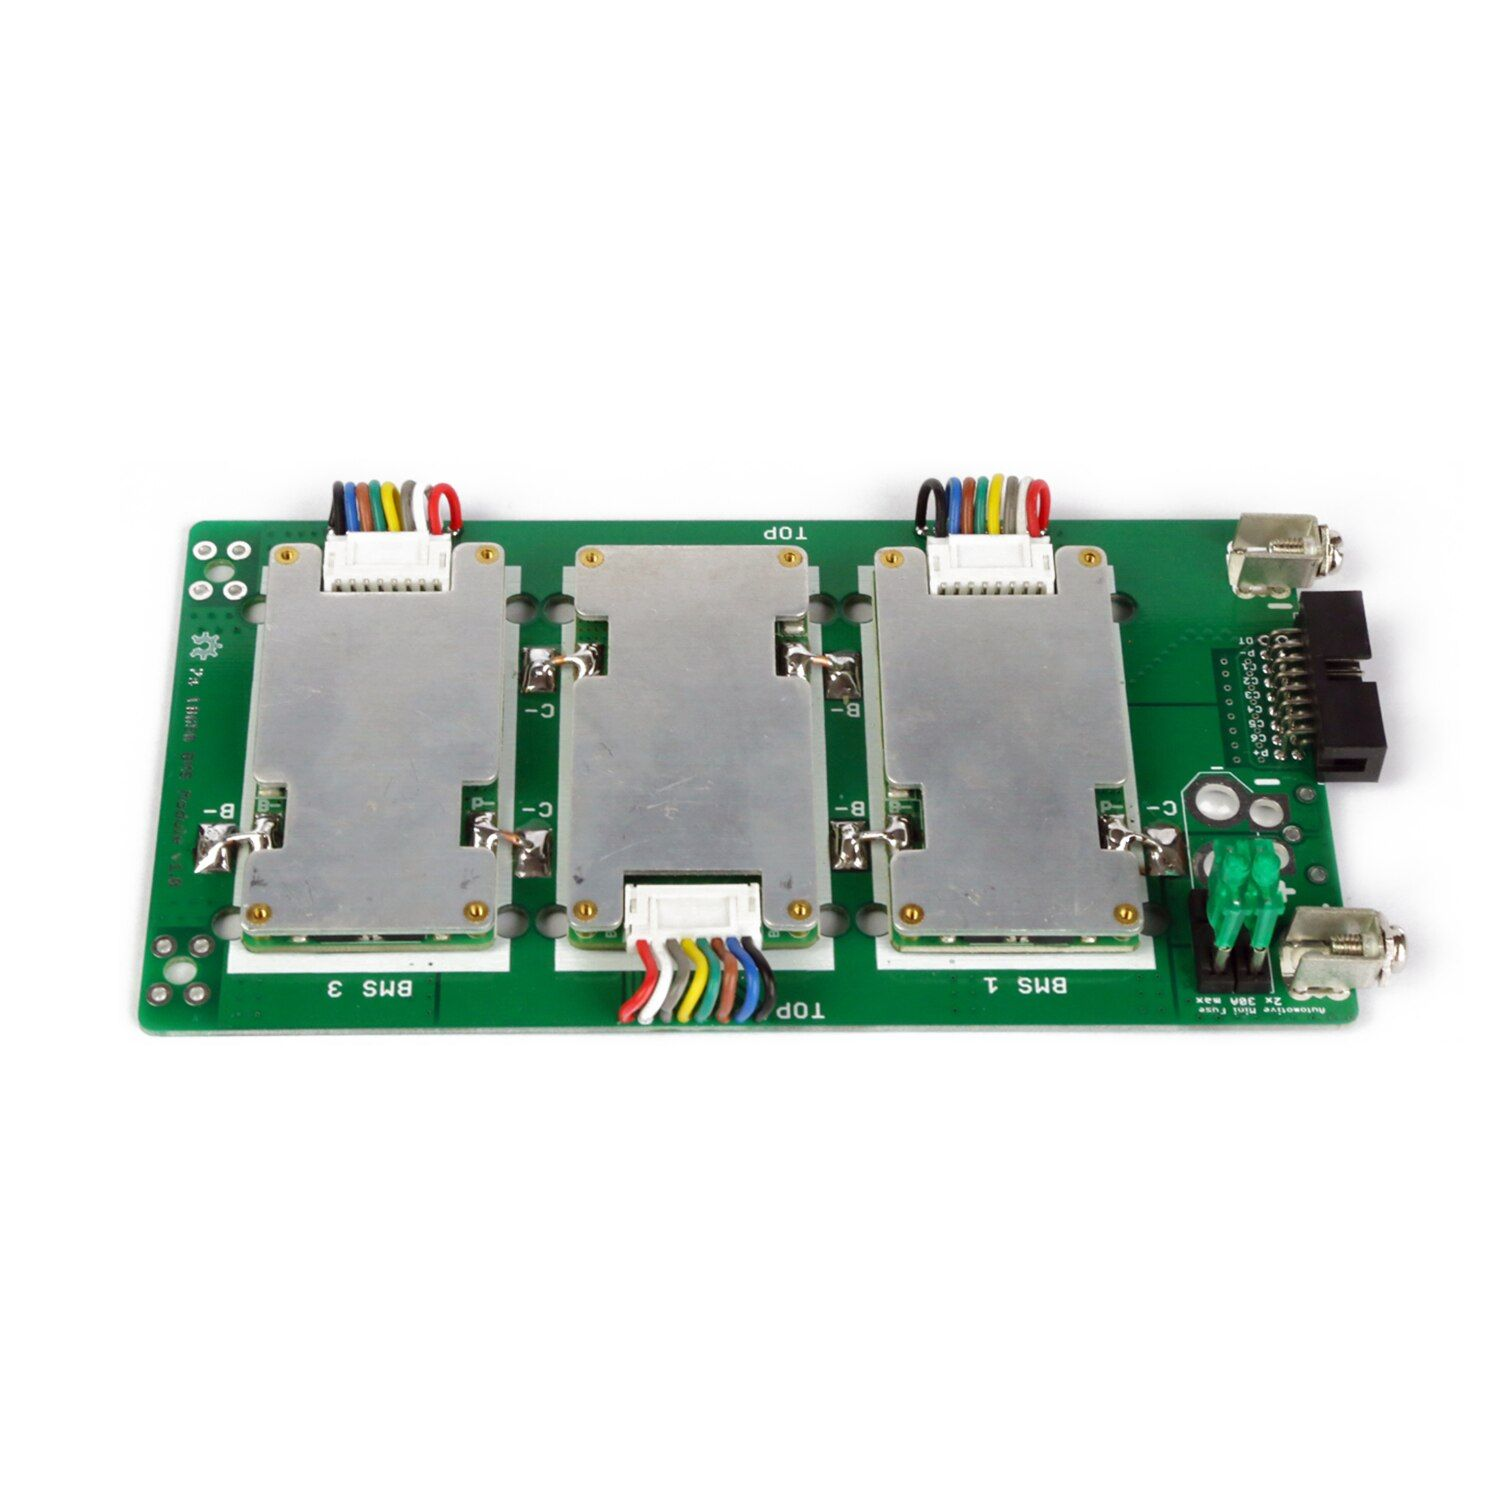 Power Wall 7s battery pack 7S battery holder 7S battery box 29.4V Li-ion Lithium 18650 Battery Pack BMS PCB board  20A 40A 60A